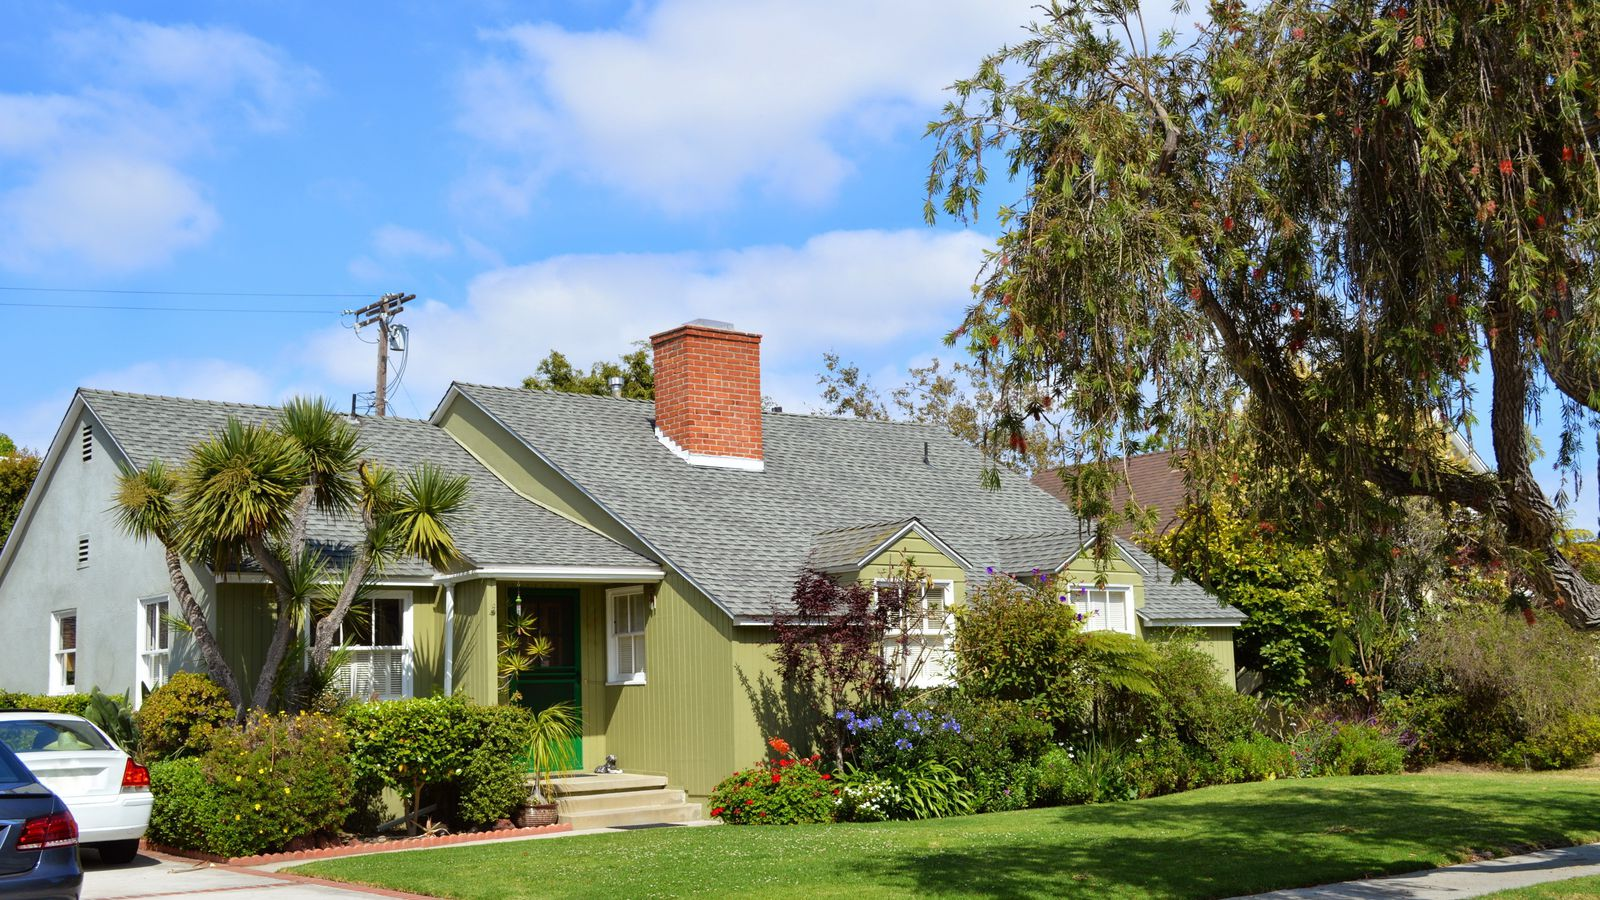 Los Angeles County Cities Memian House Price